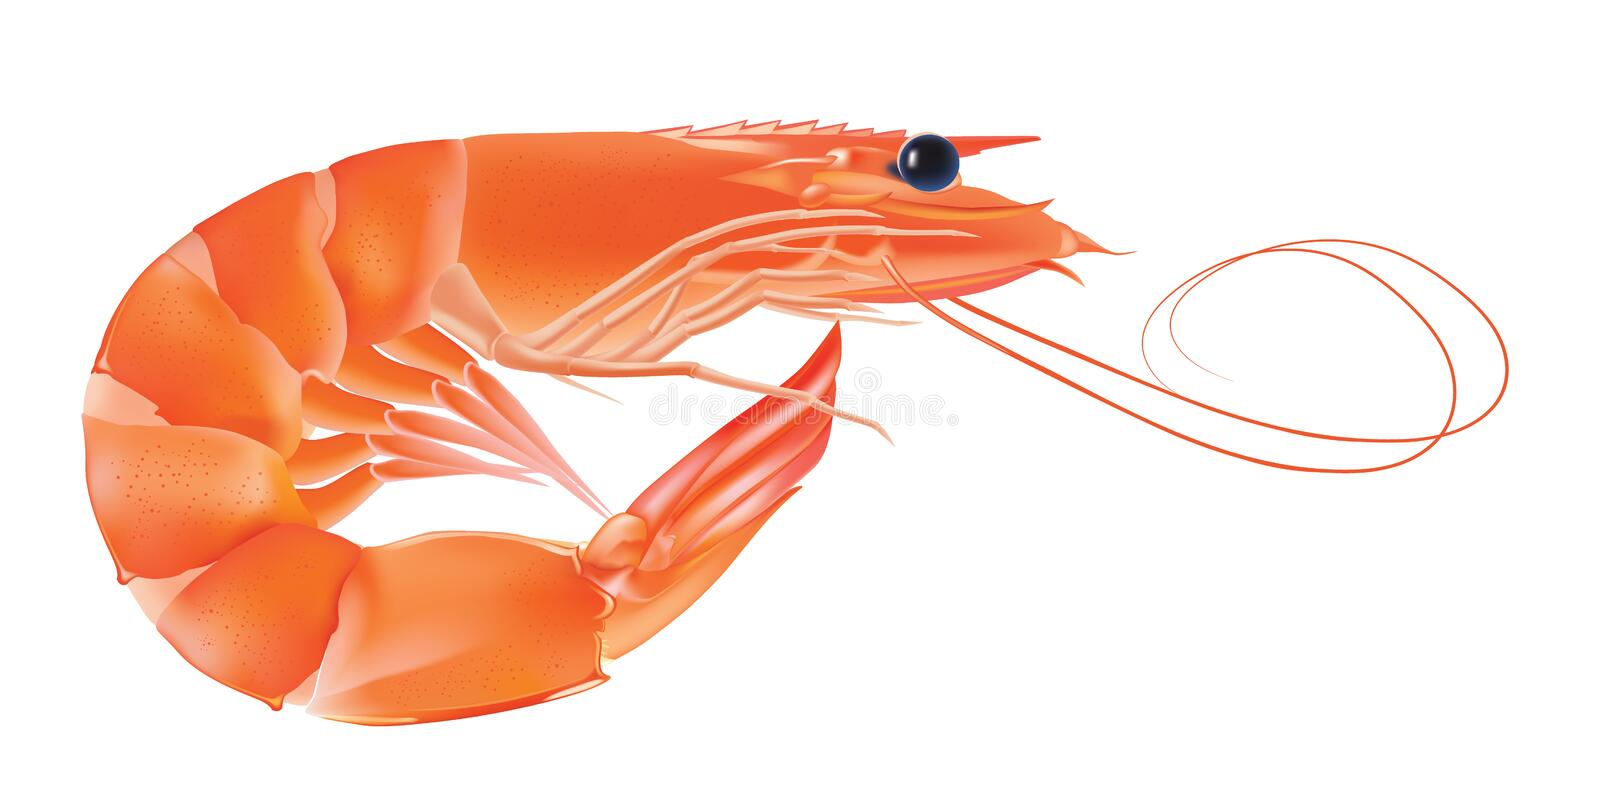 vector shrimp seafood prawn with head and legs illustration rh dreamstime com Oyster Shell Clip Art Oyster Reef Clip Art